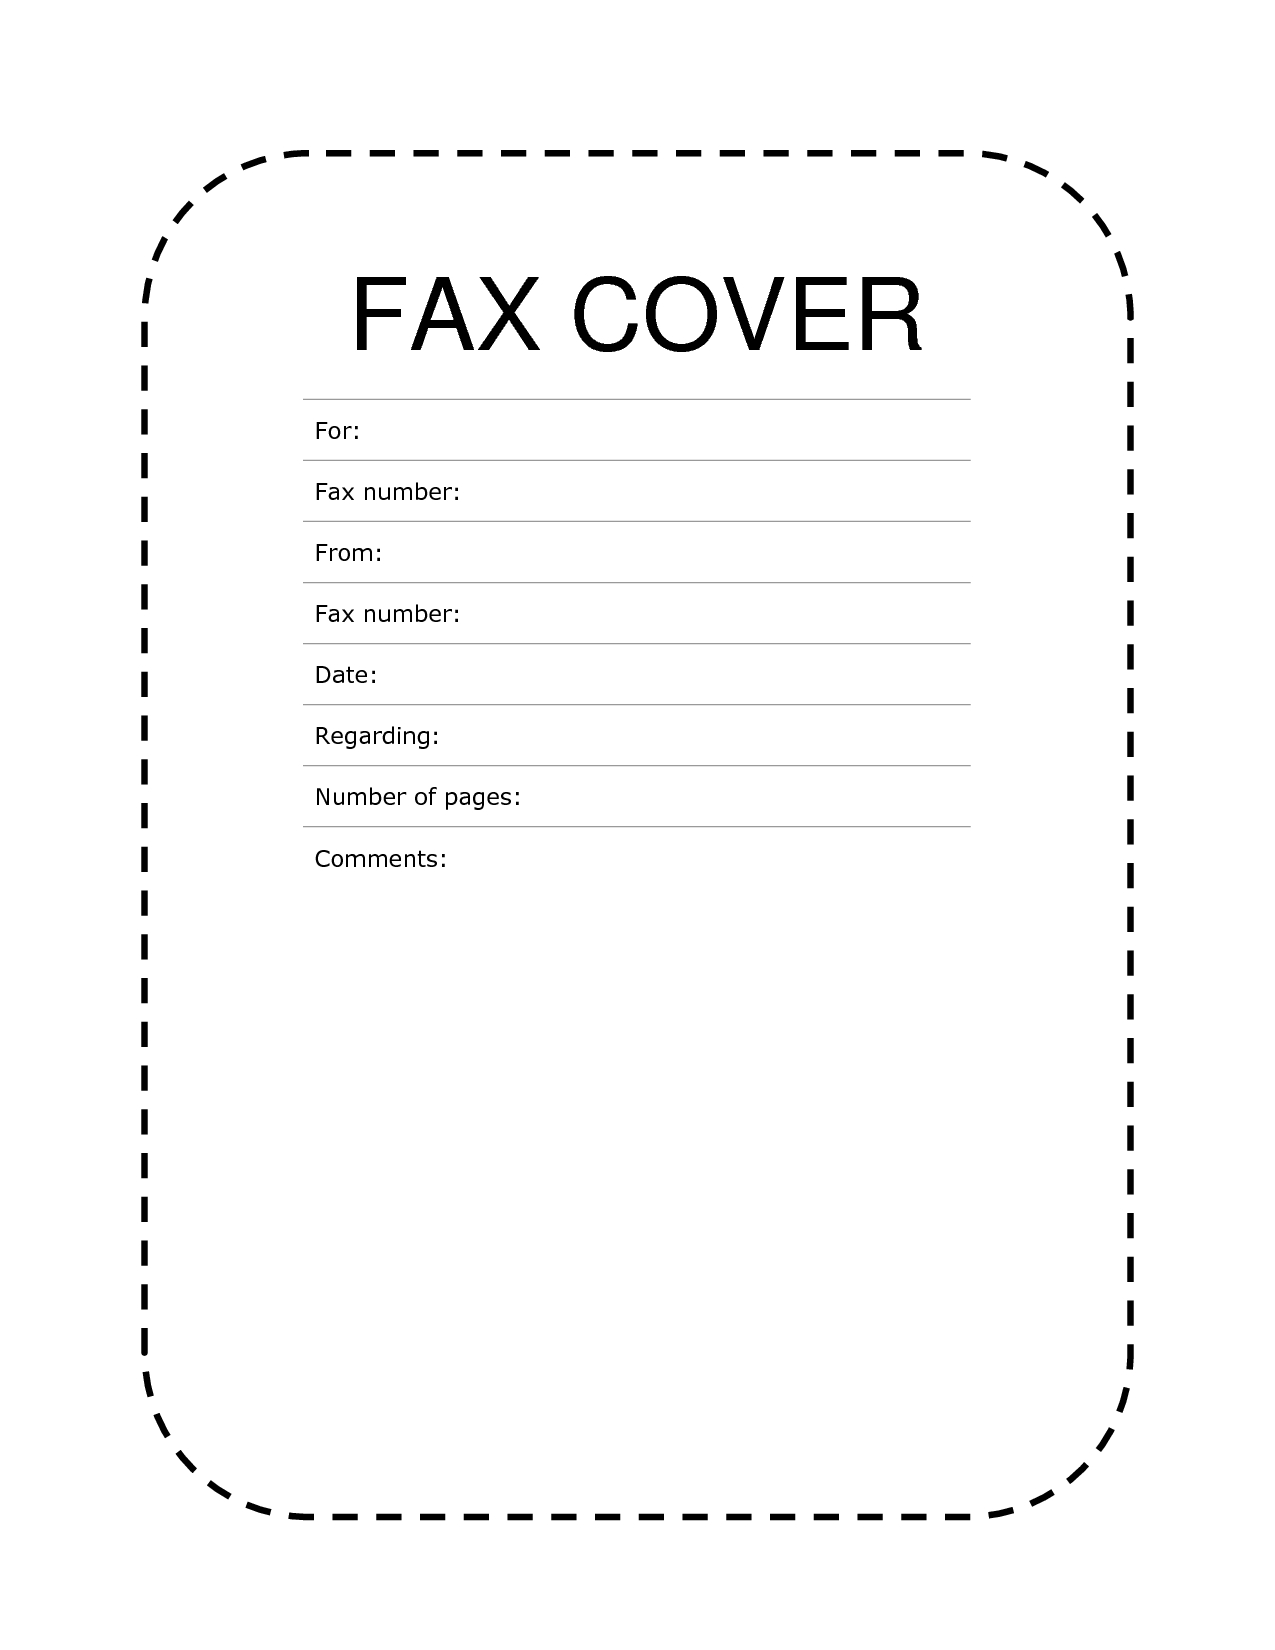 Free Fax Cover Sheet Template Format Example Pdf Printable | Fax - Free Printable Cover Letter For Fax